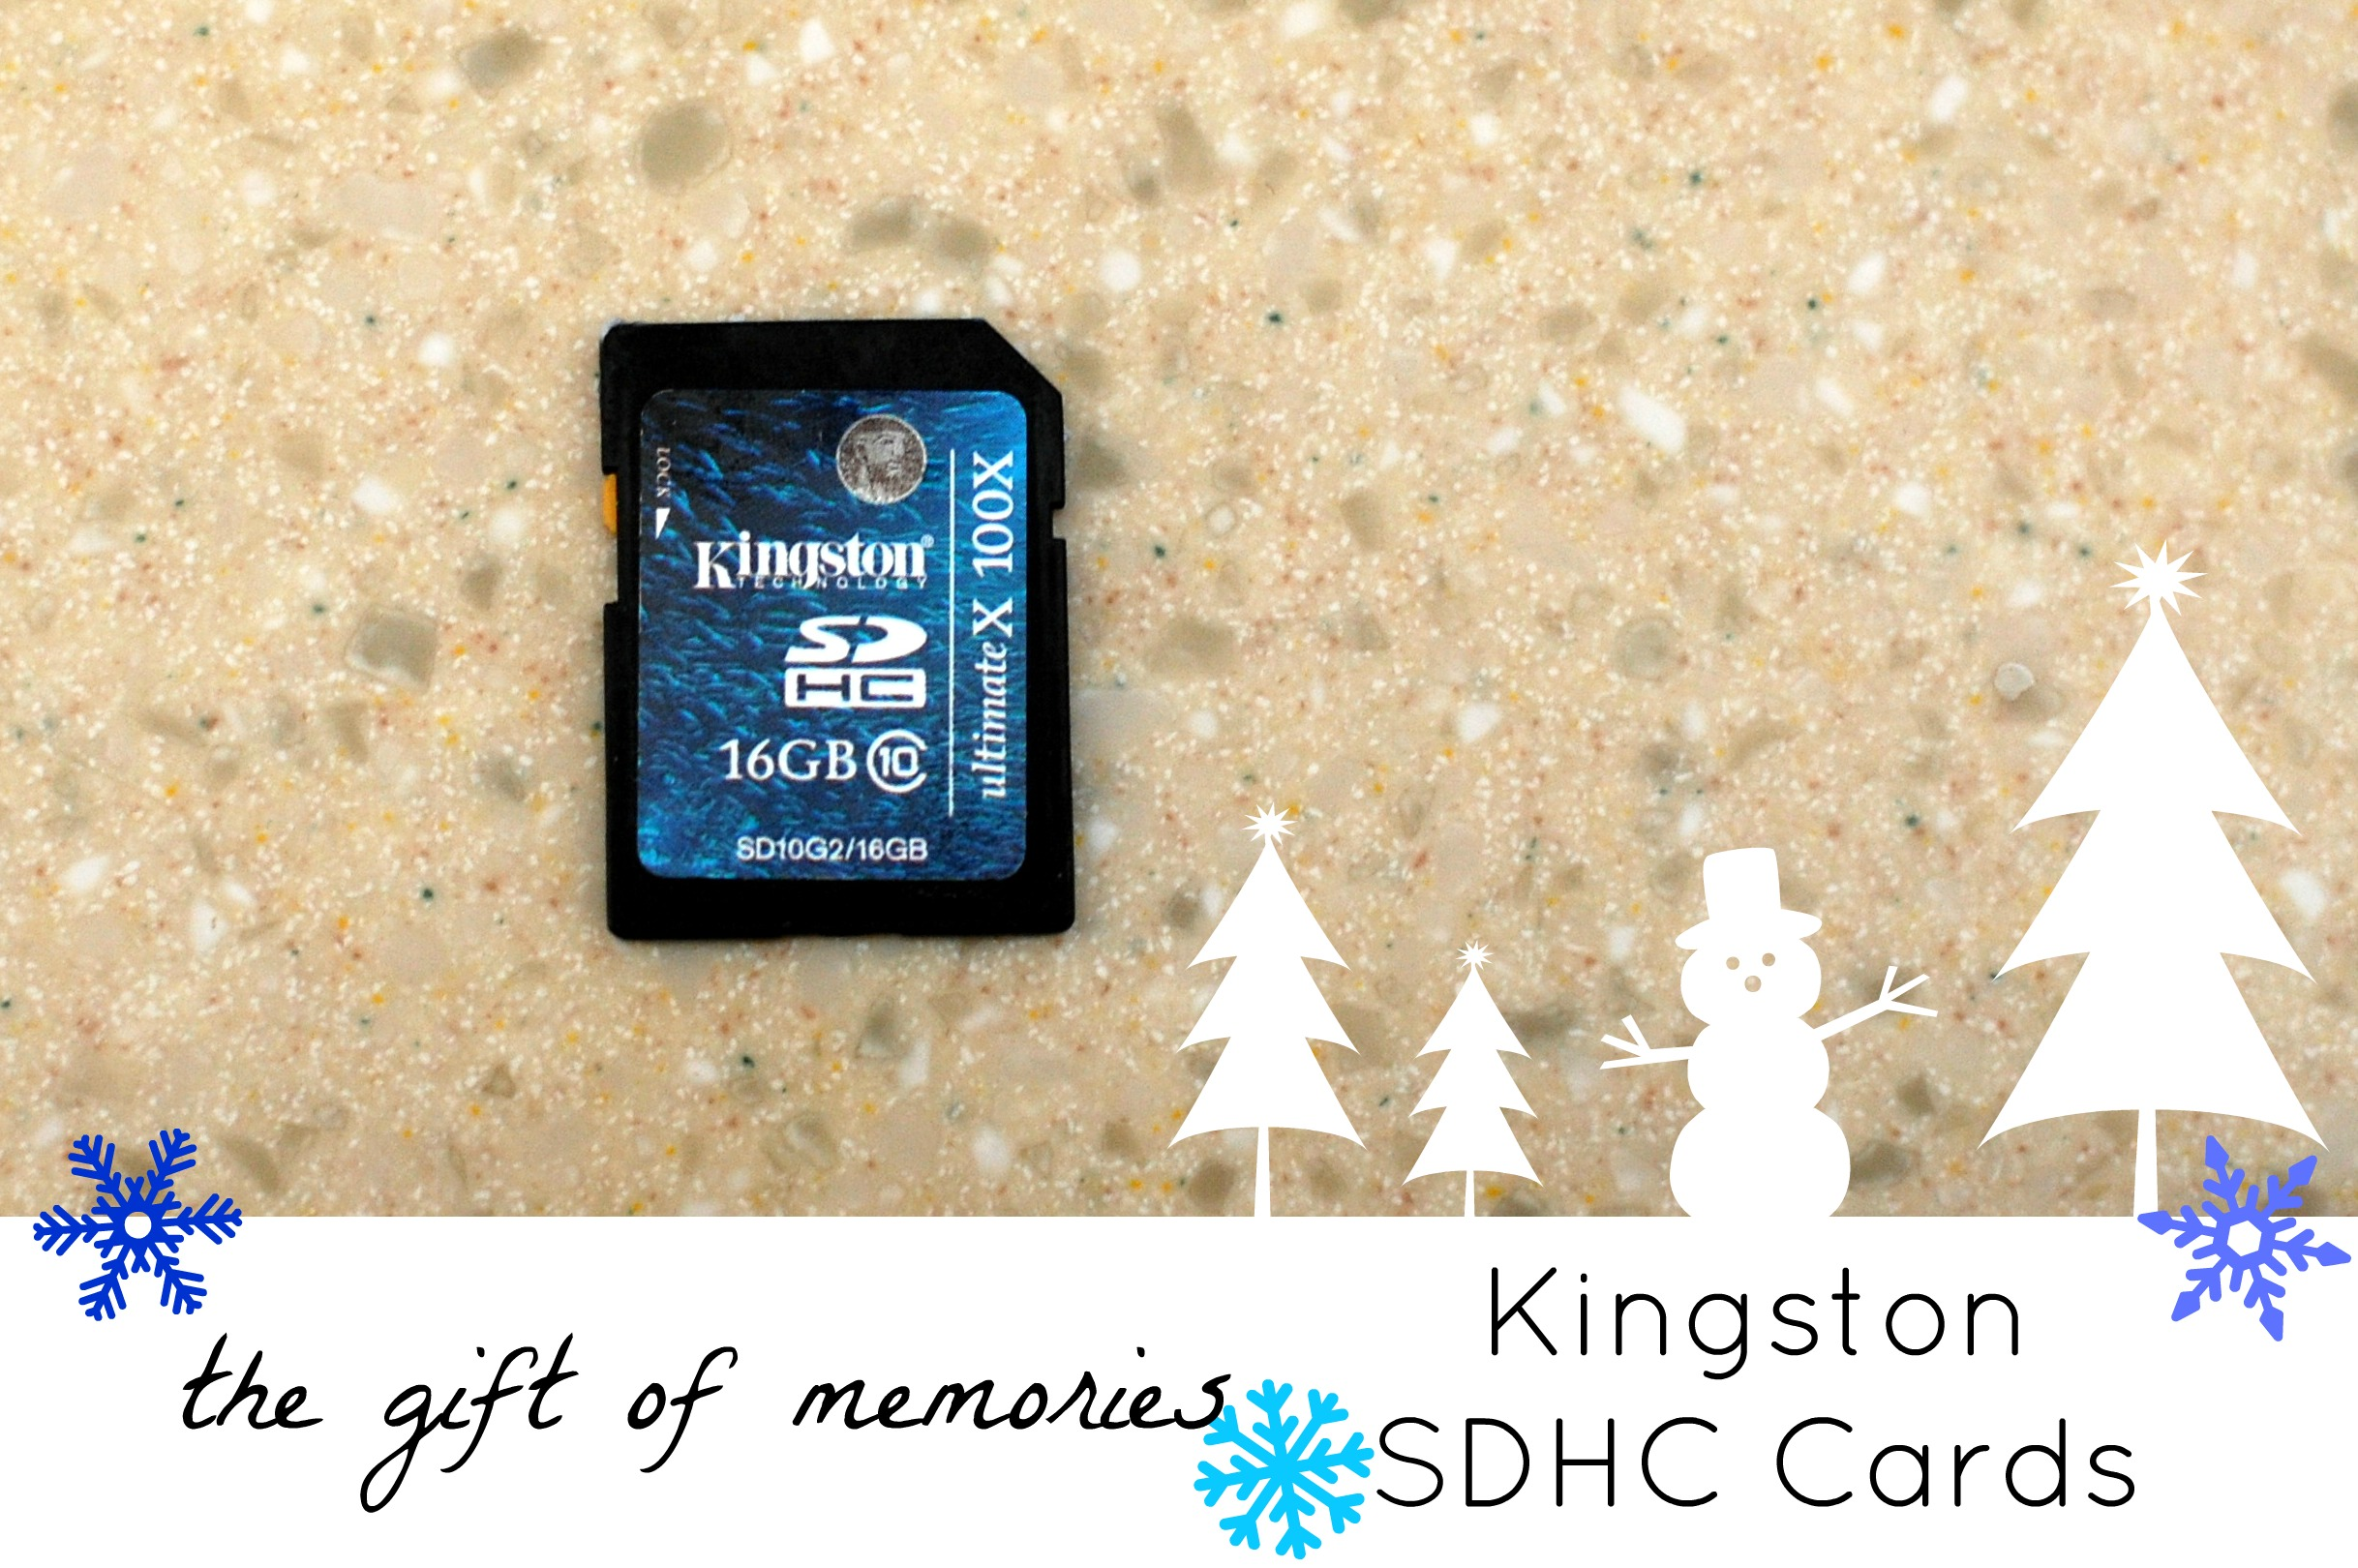 Kingston SDHC Cards gift of memories